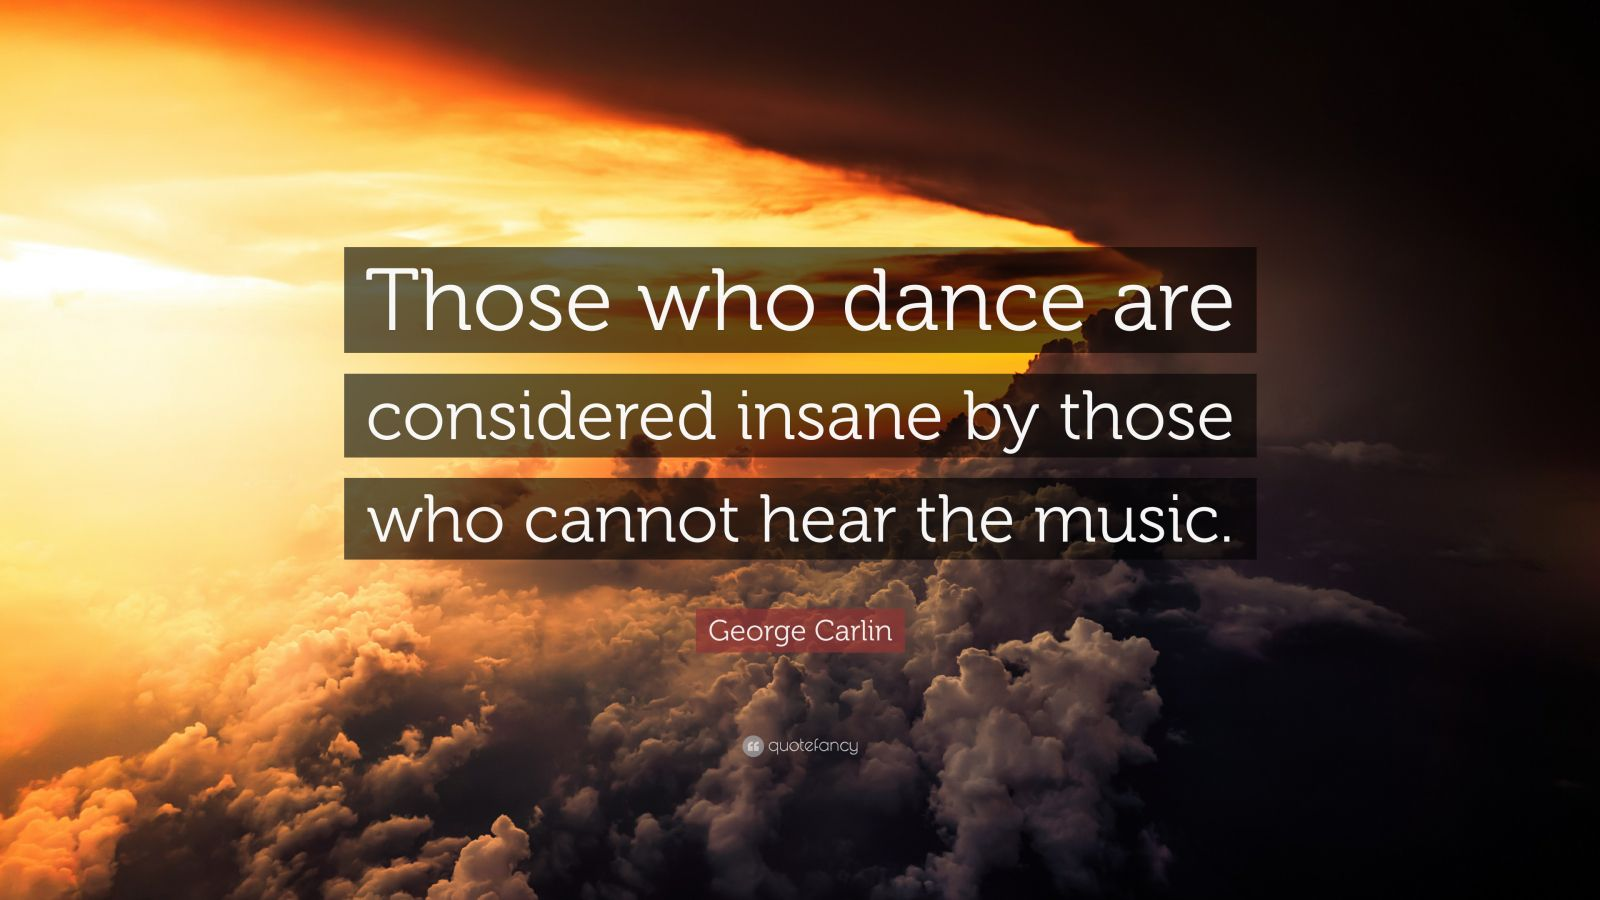 george carlin quote   u201cthose who dance are considered insane by those who cannot hear the music